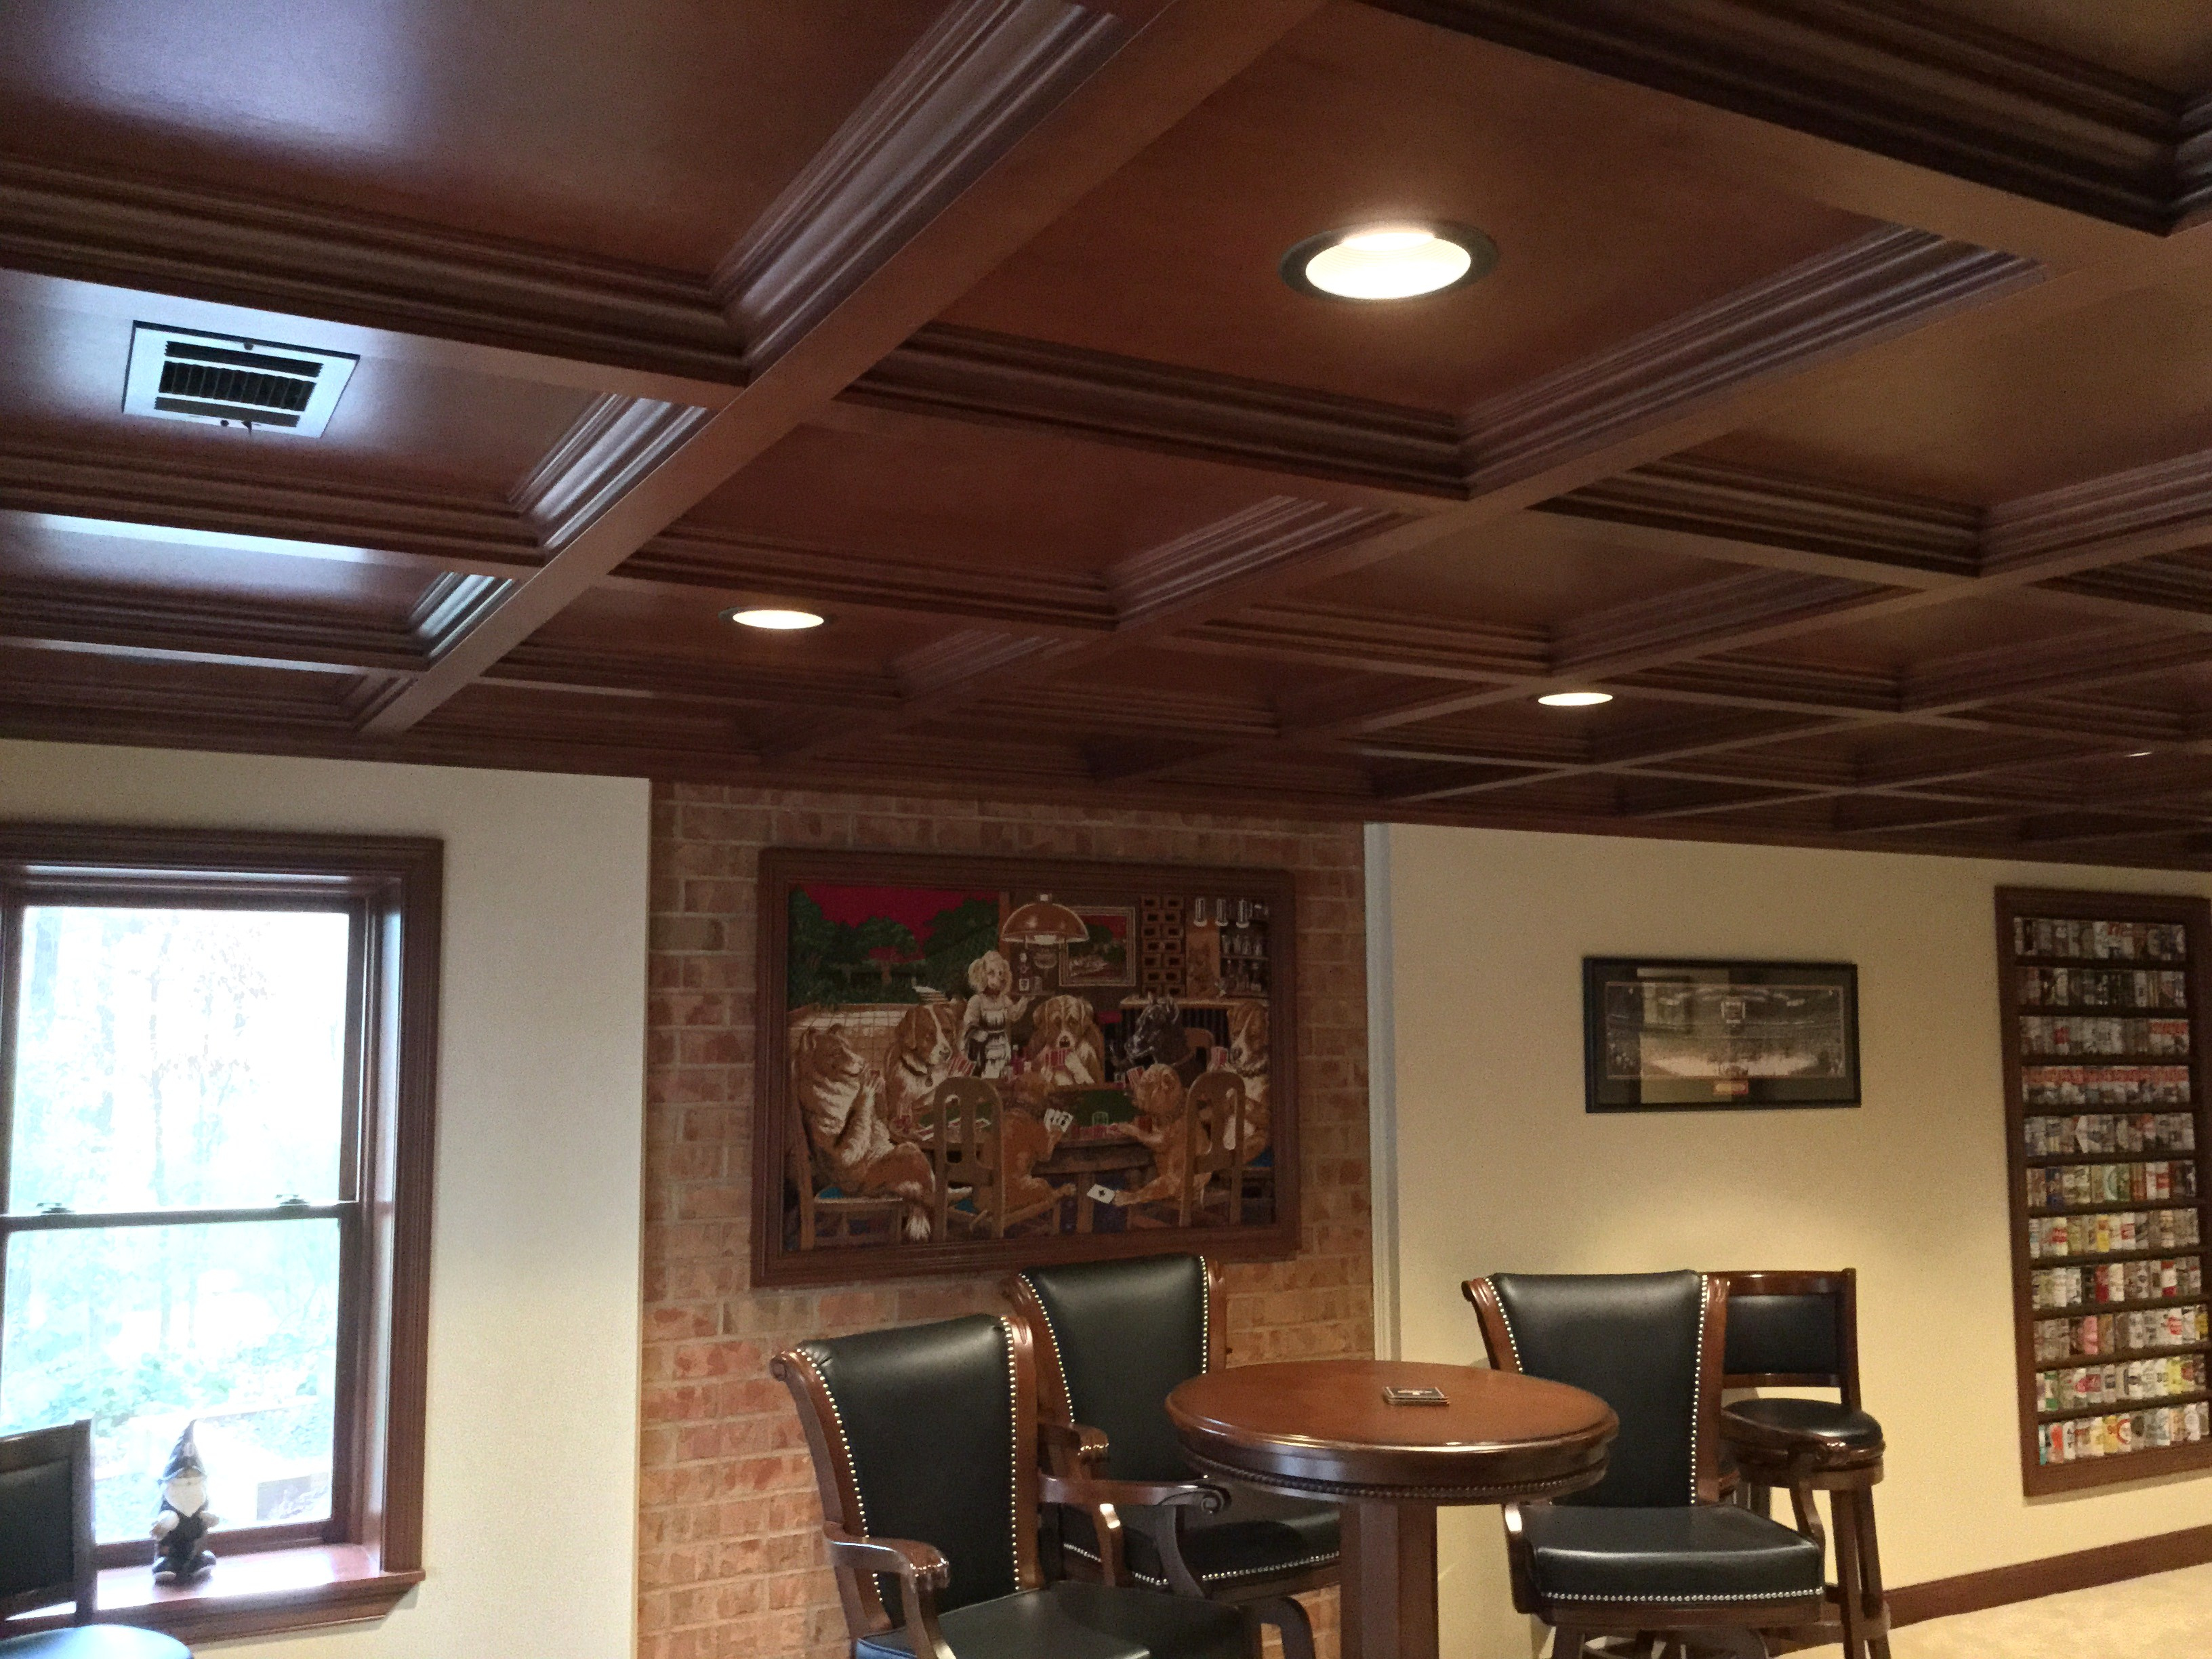 Basements Bars Game Woodgrid 174 Coffered Ceilings By